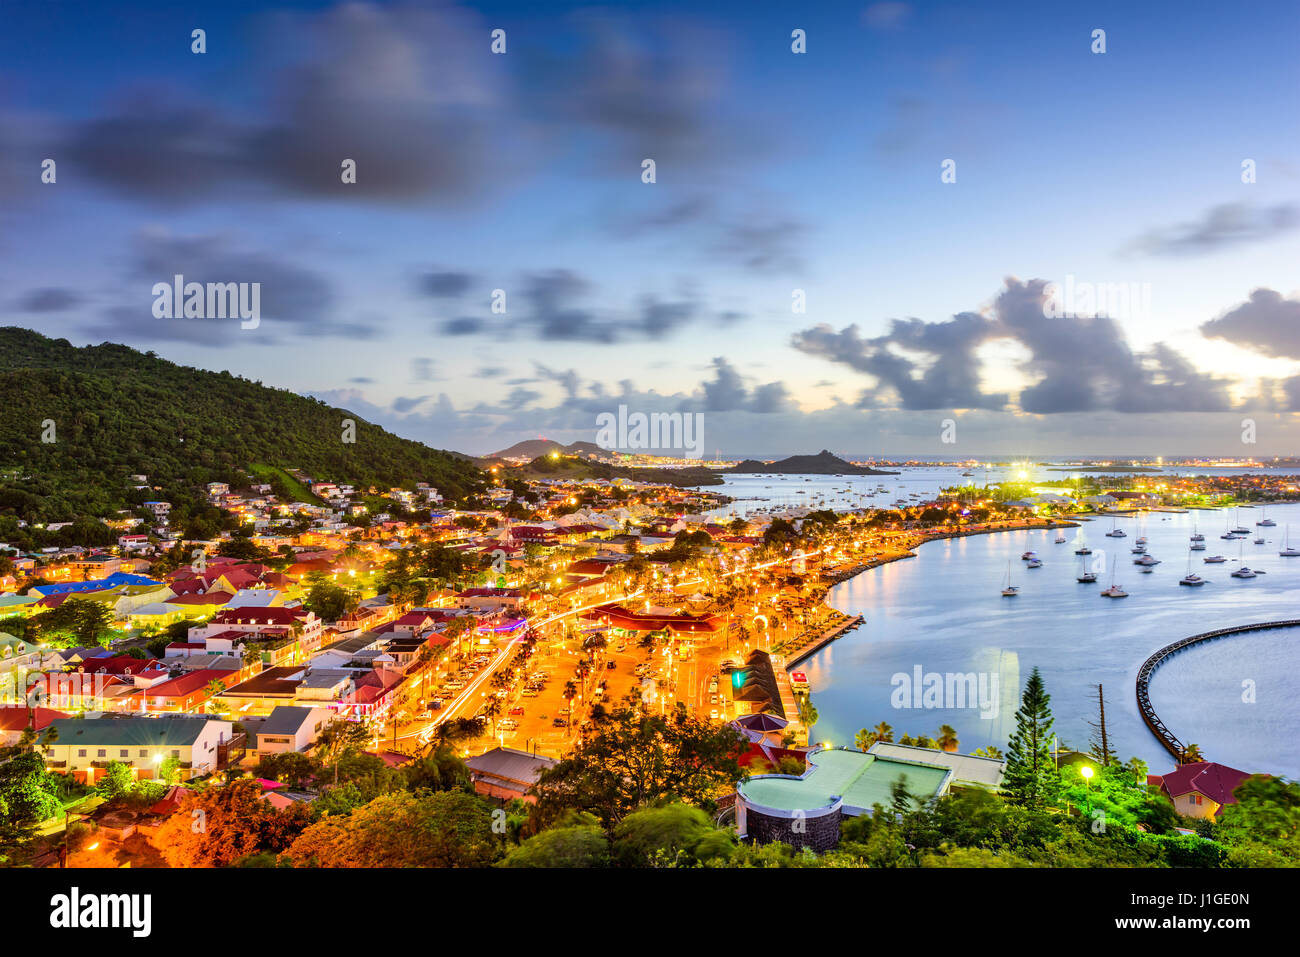 La ville de Marigot, Saint Martin d'horizon. Photo Stock